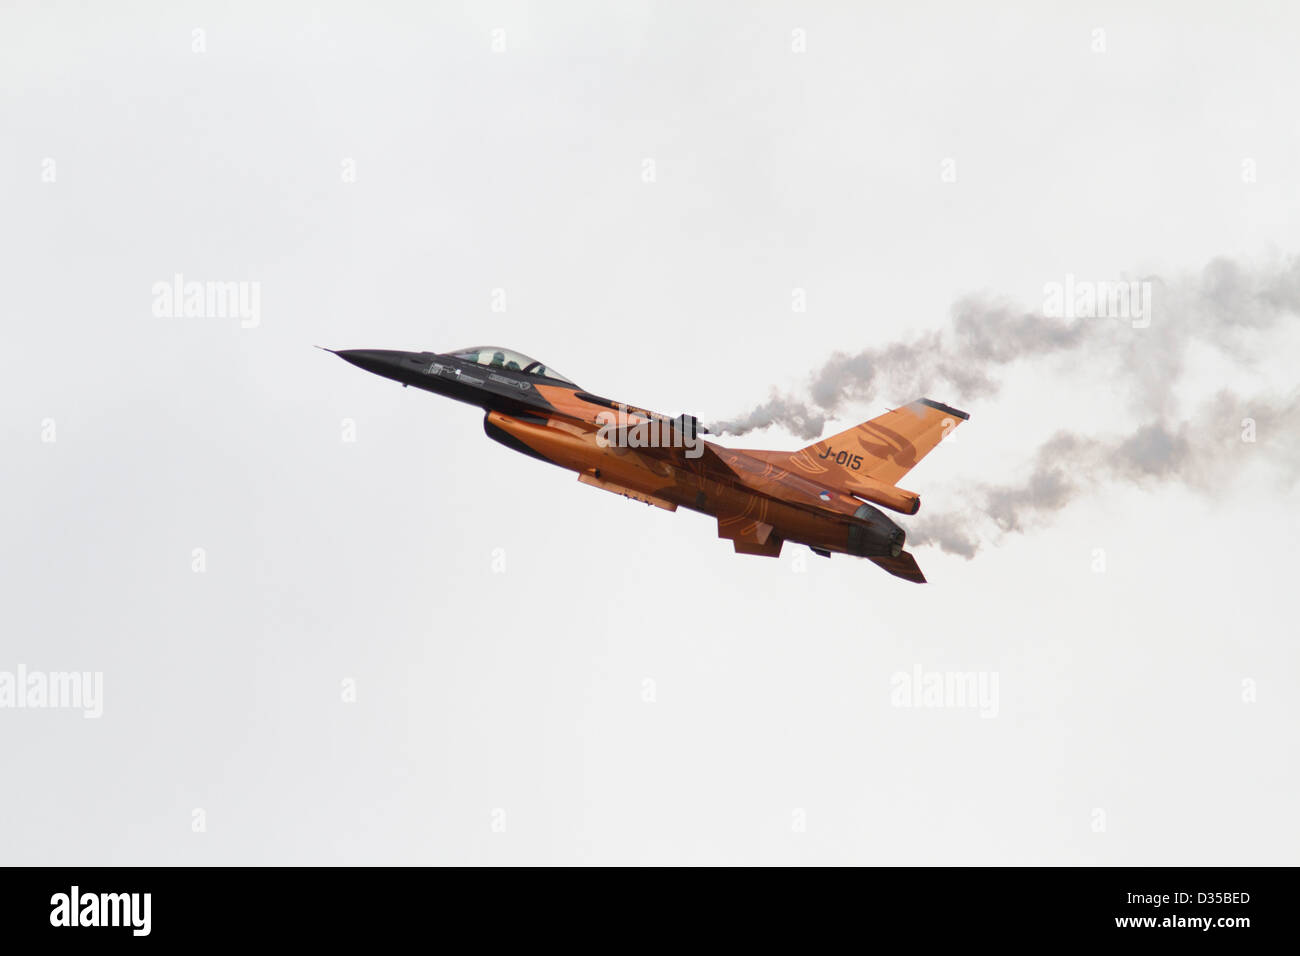 Netherlands Air Force F-16 Aerobatic display team - Stock Image